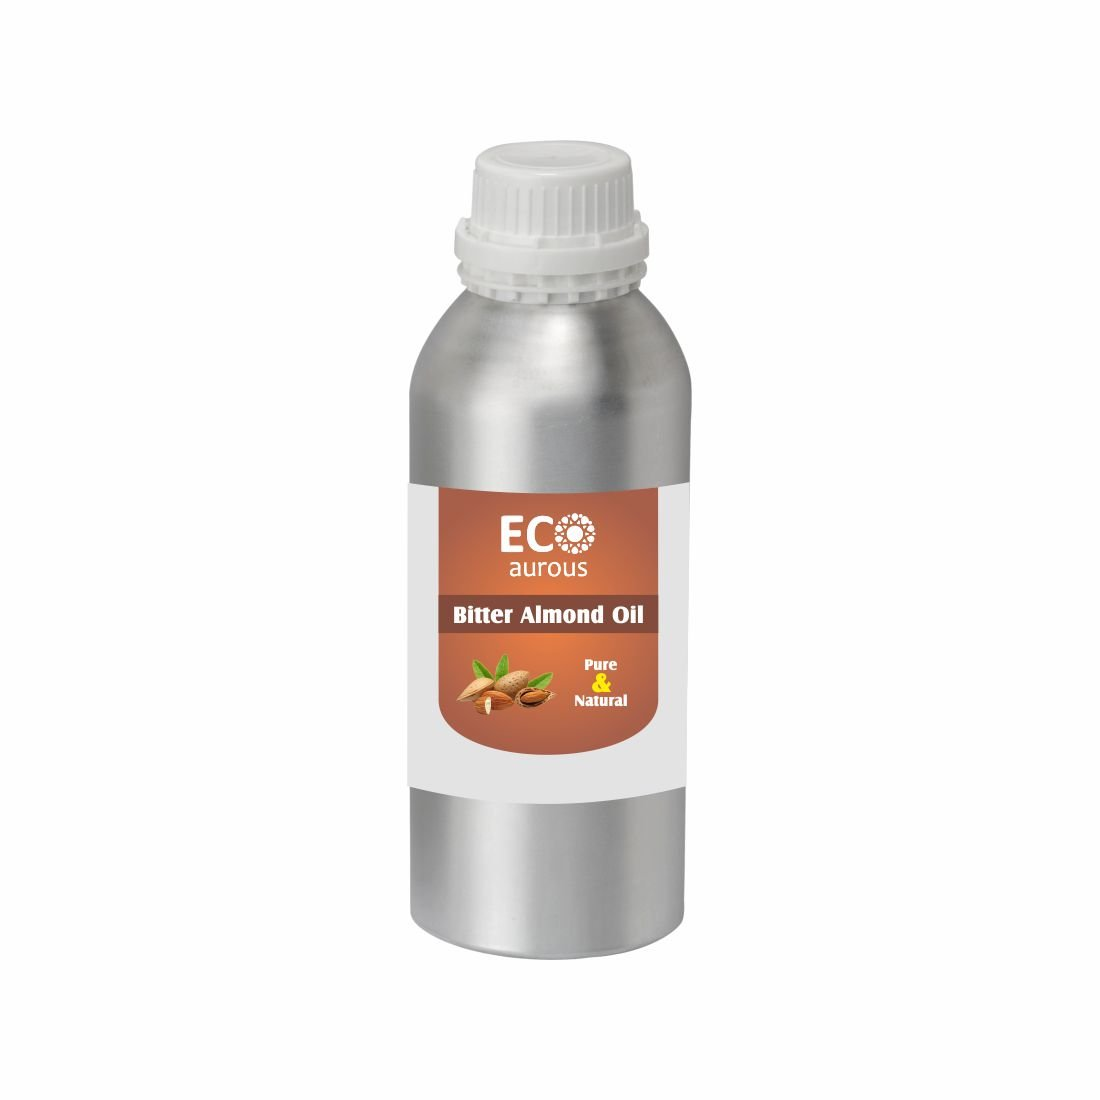 Bitter Almond Oil | 100% Natural Essential Oil | Bitter Almond Oil For Skin, Hair, Dark Circles| Bitter Almond Essential Oil By ECO AUROUS. (100ml (3.38oz)) Tosc International Pvt Ltd